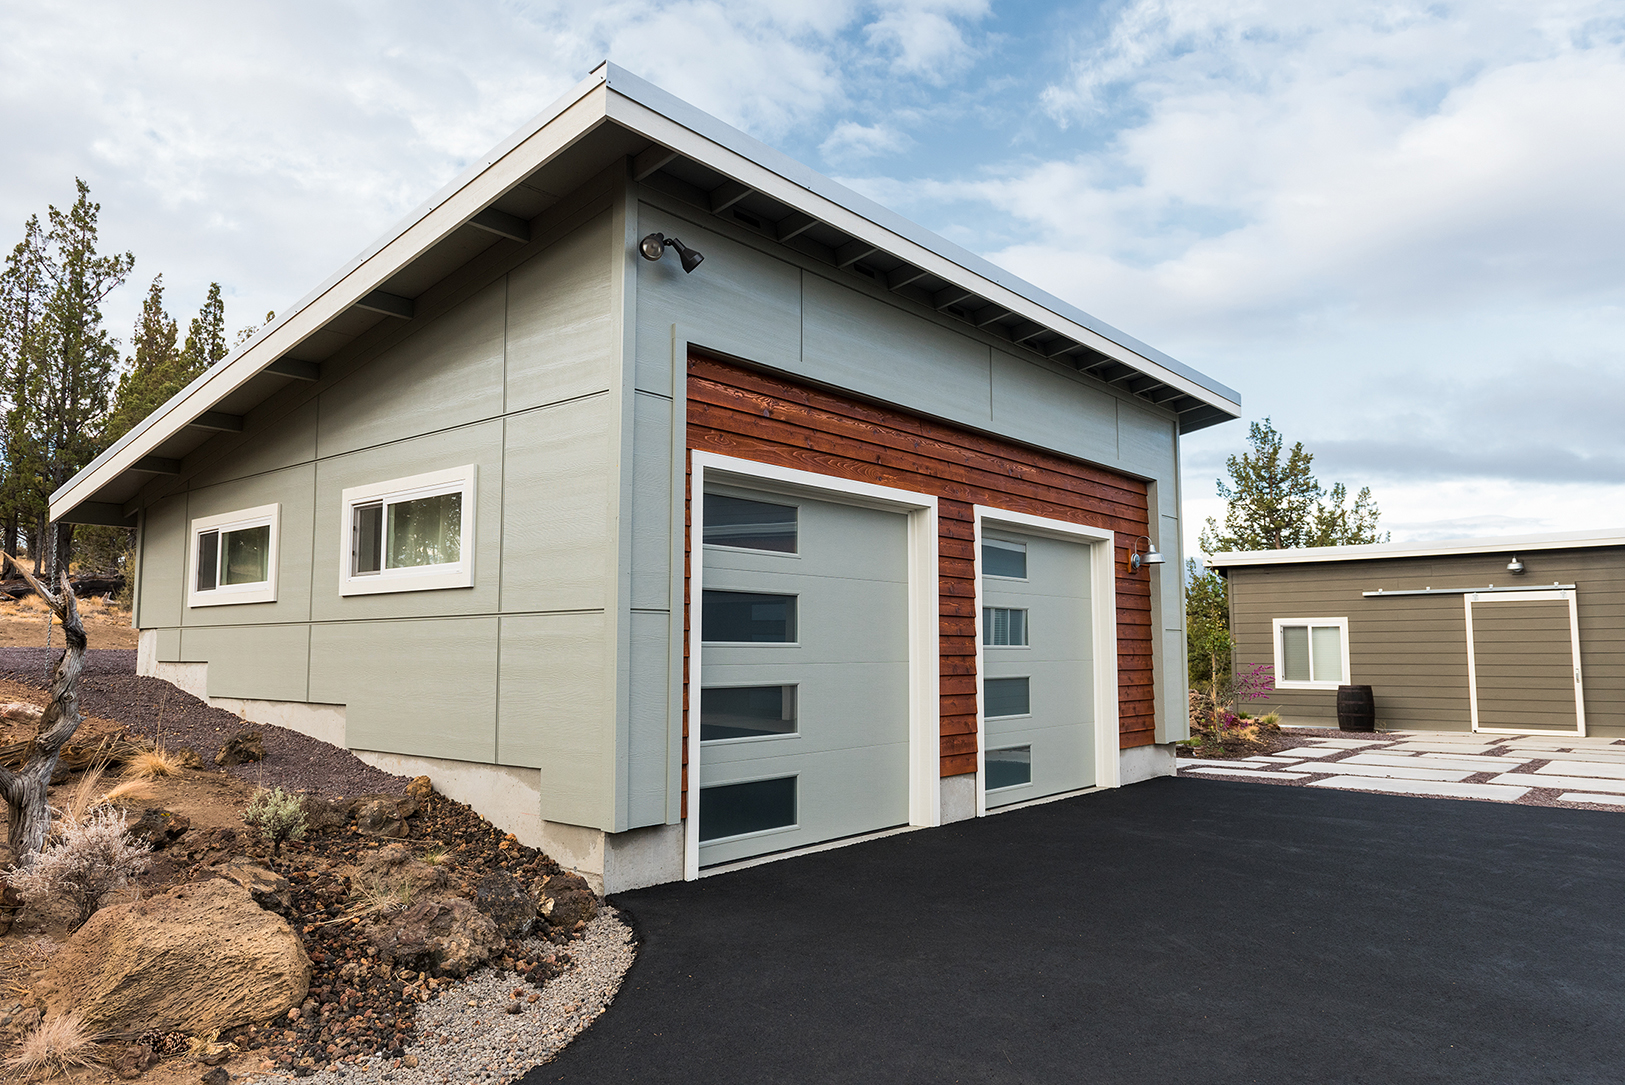 pgc-building-design-bend-oregon-parno-rgb-1625px-PGC-8344